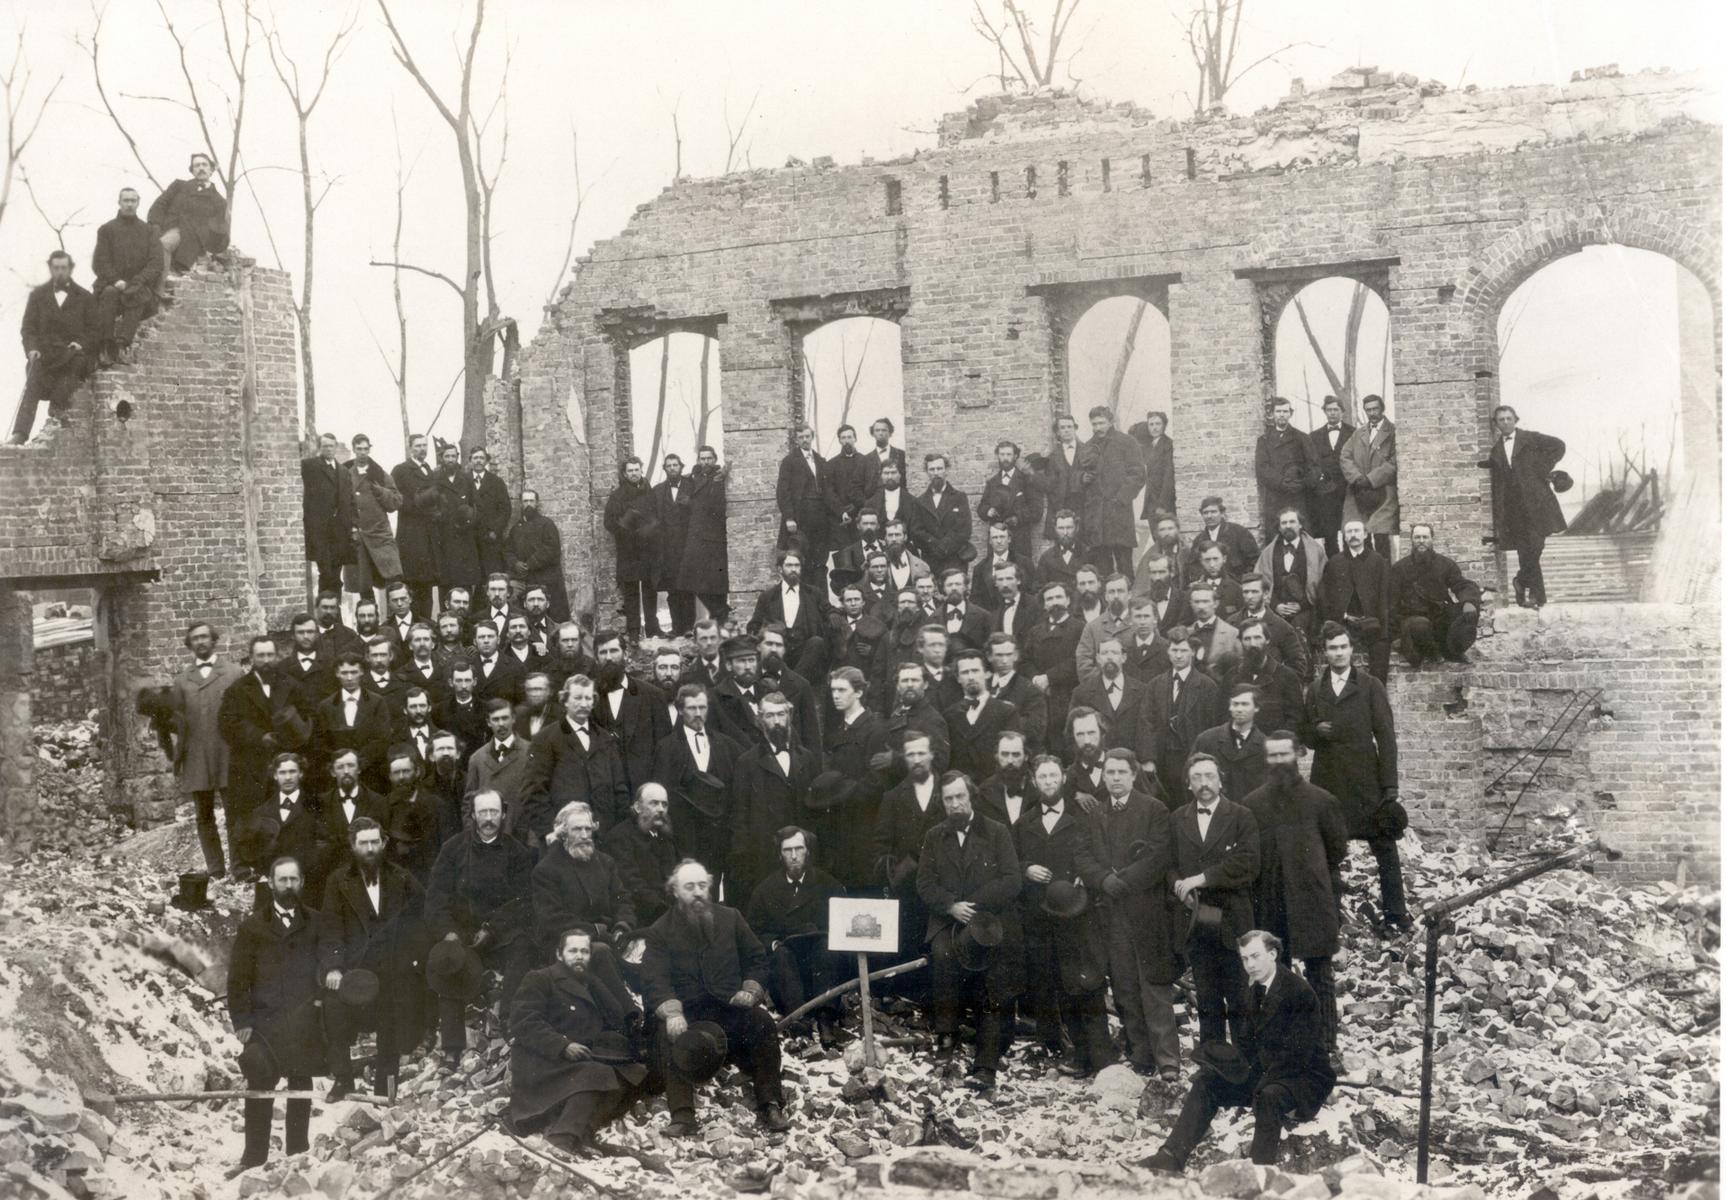 Faculty and Students of Rush Medical College in the ruins of the college after Great Chicago Fire, 1871